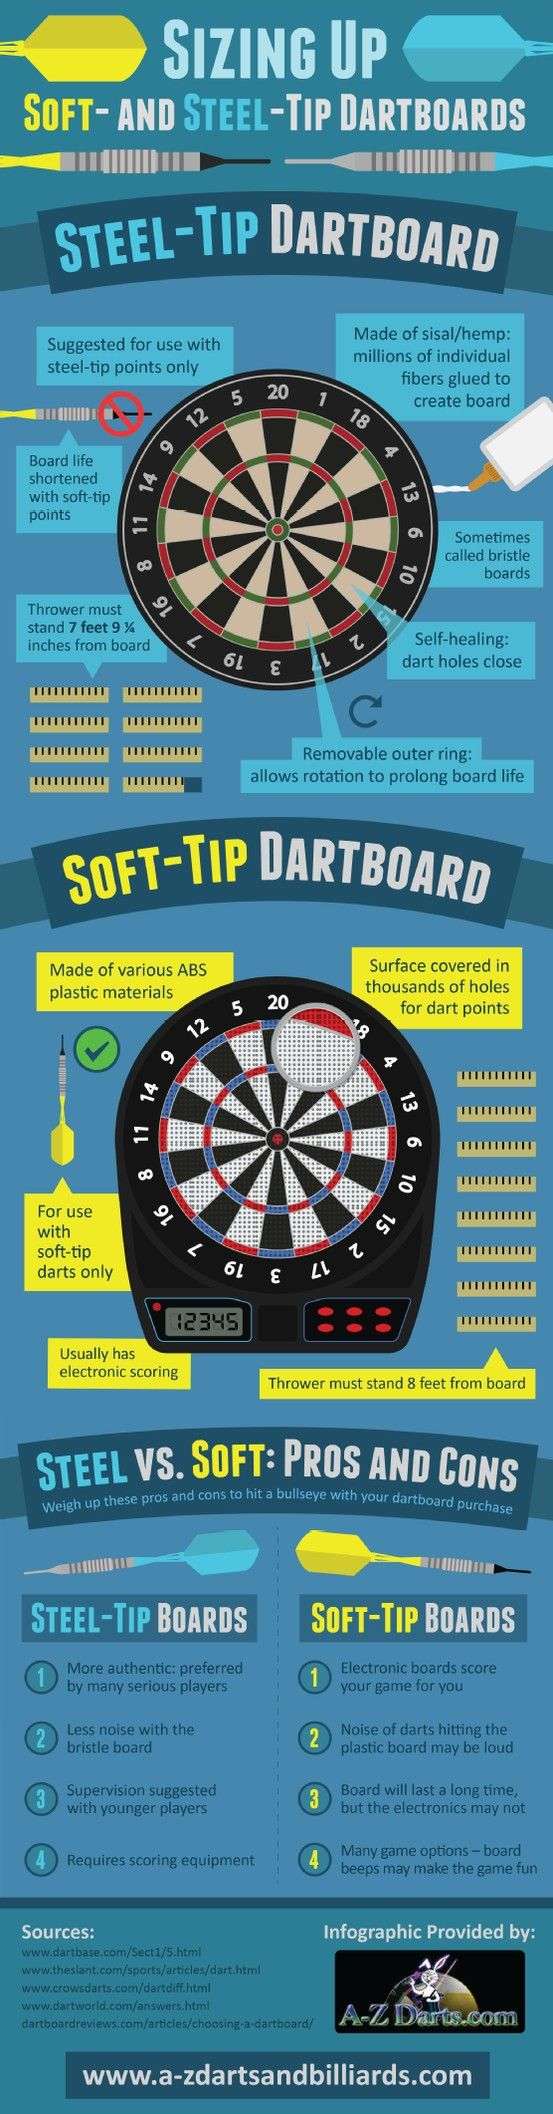 Figuring out scores can be challenging during a game of darts. Luckily, soft-tip dartboards offer electronic scoring systems that do the hard work while you focus on your game. Take a closer look at popular dartboard styles by checking out this California infographic.